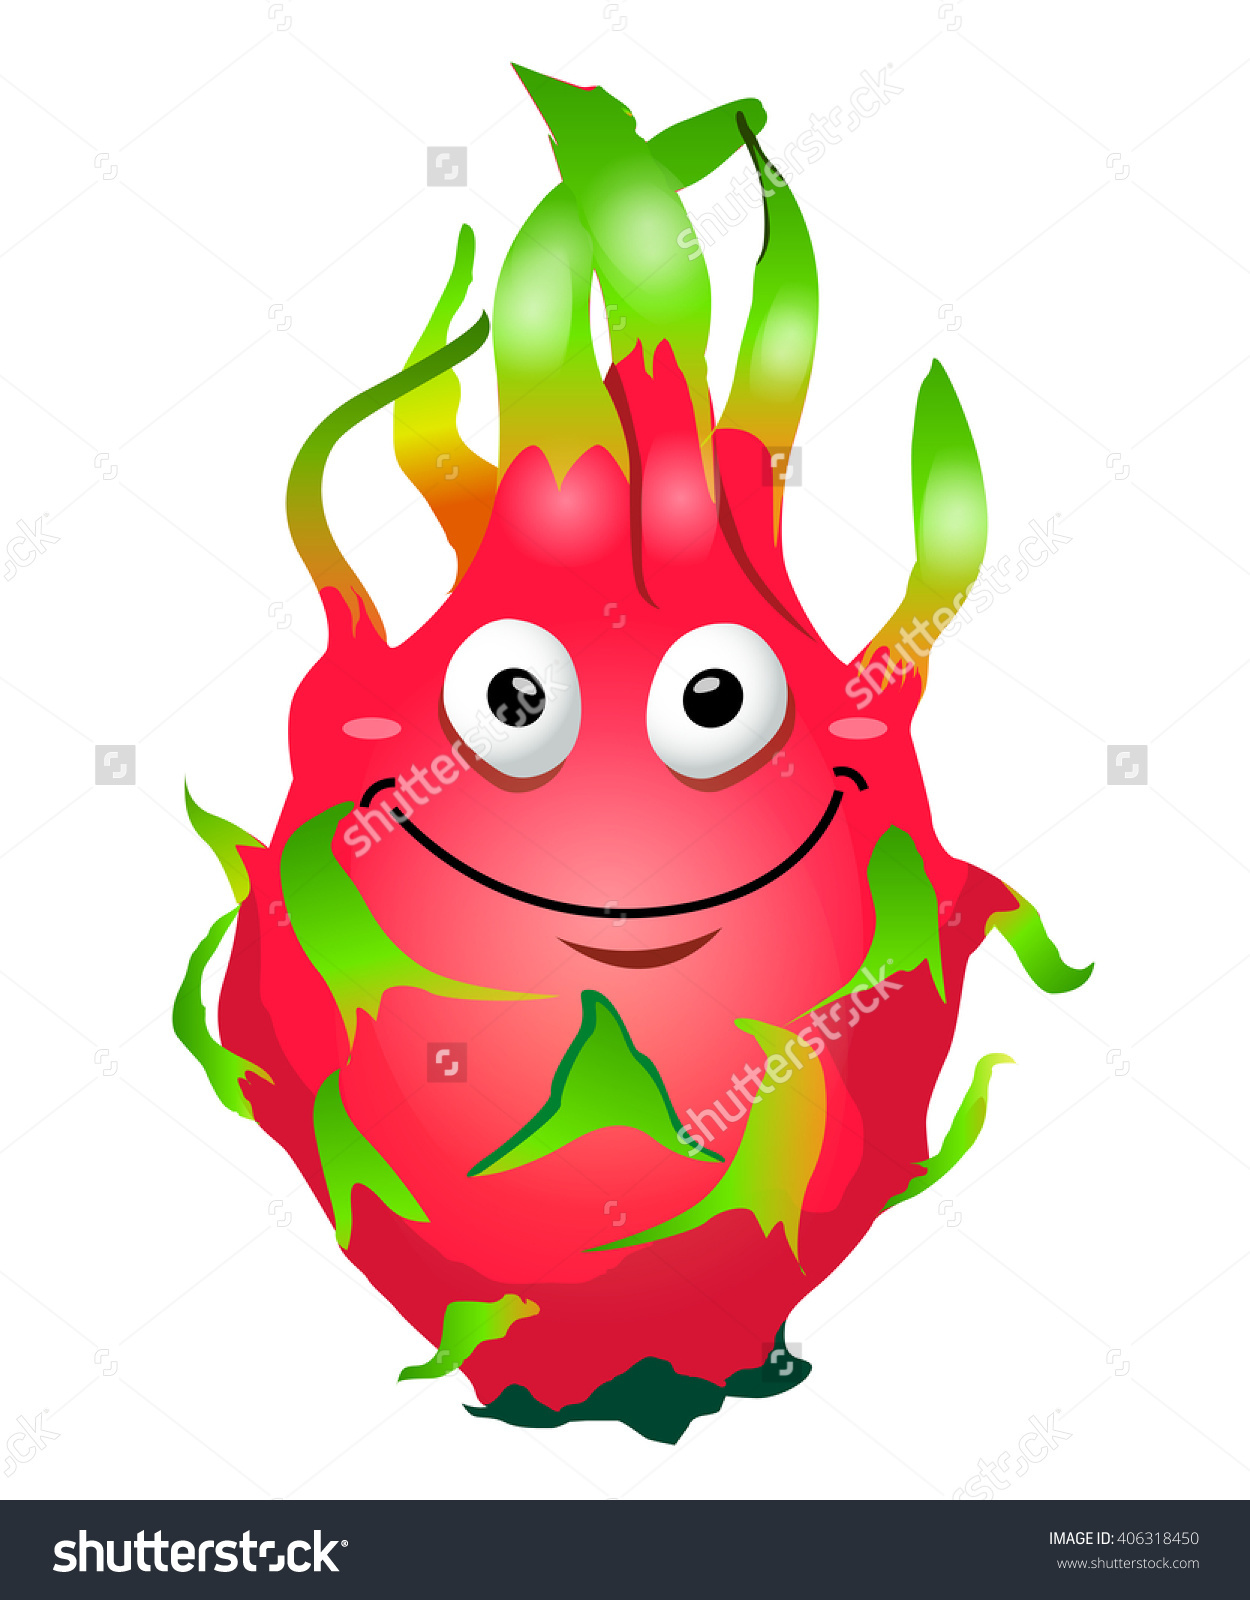 Cartoon Fun Dragon Fruit Character Pitaya Stock Vector 406318450.